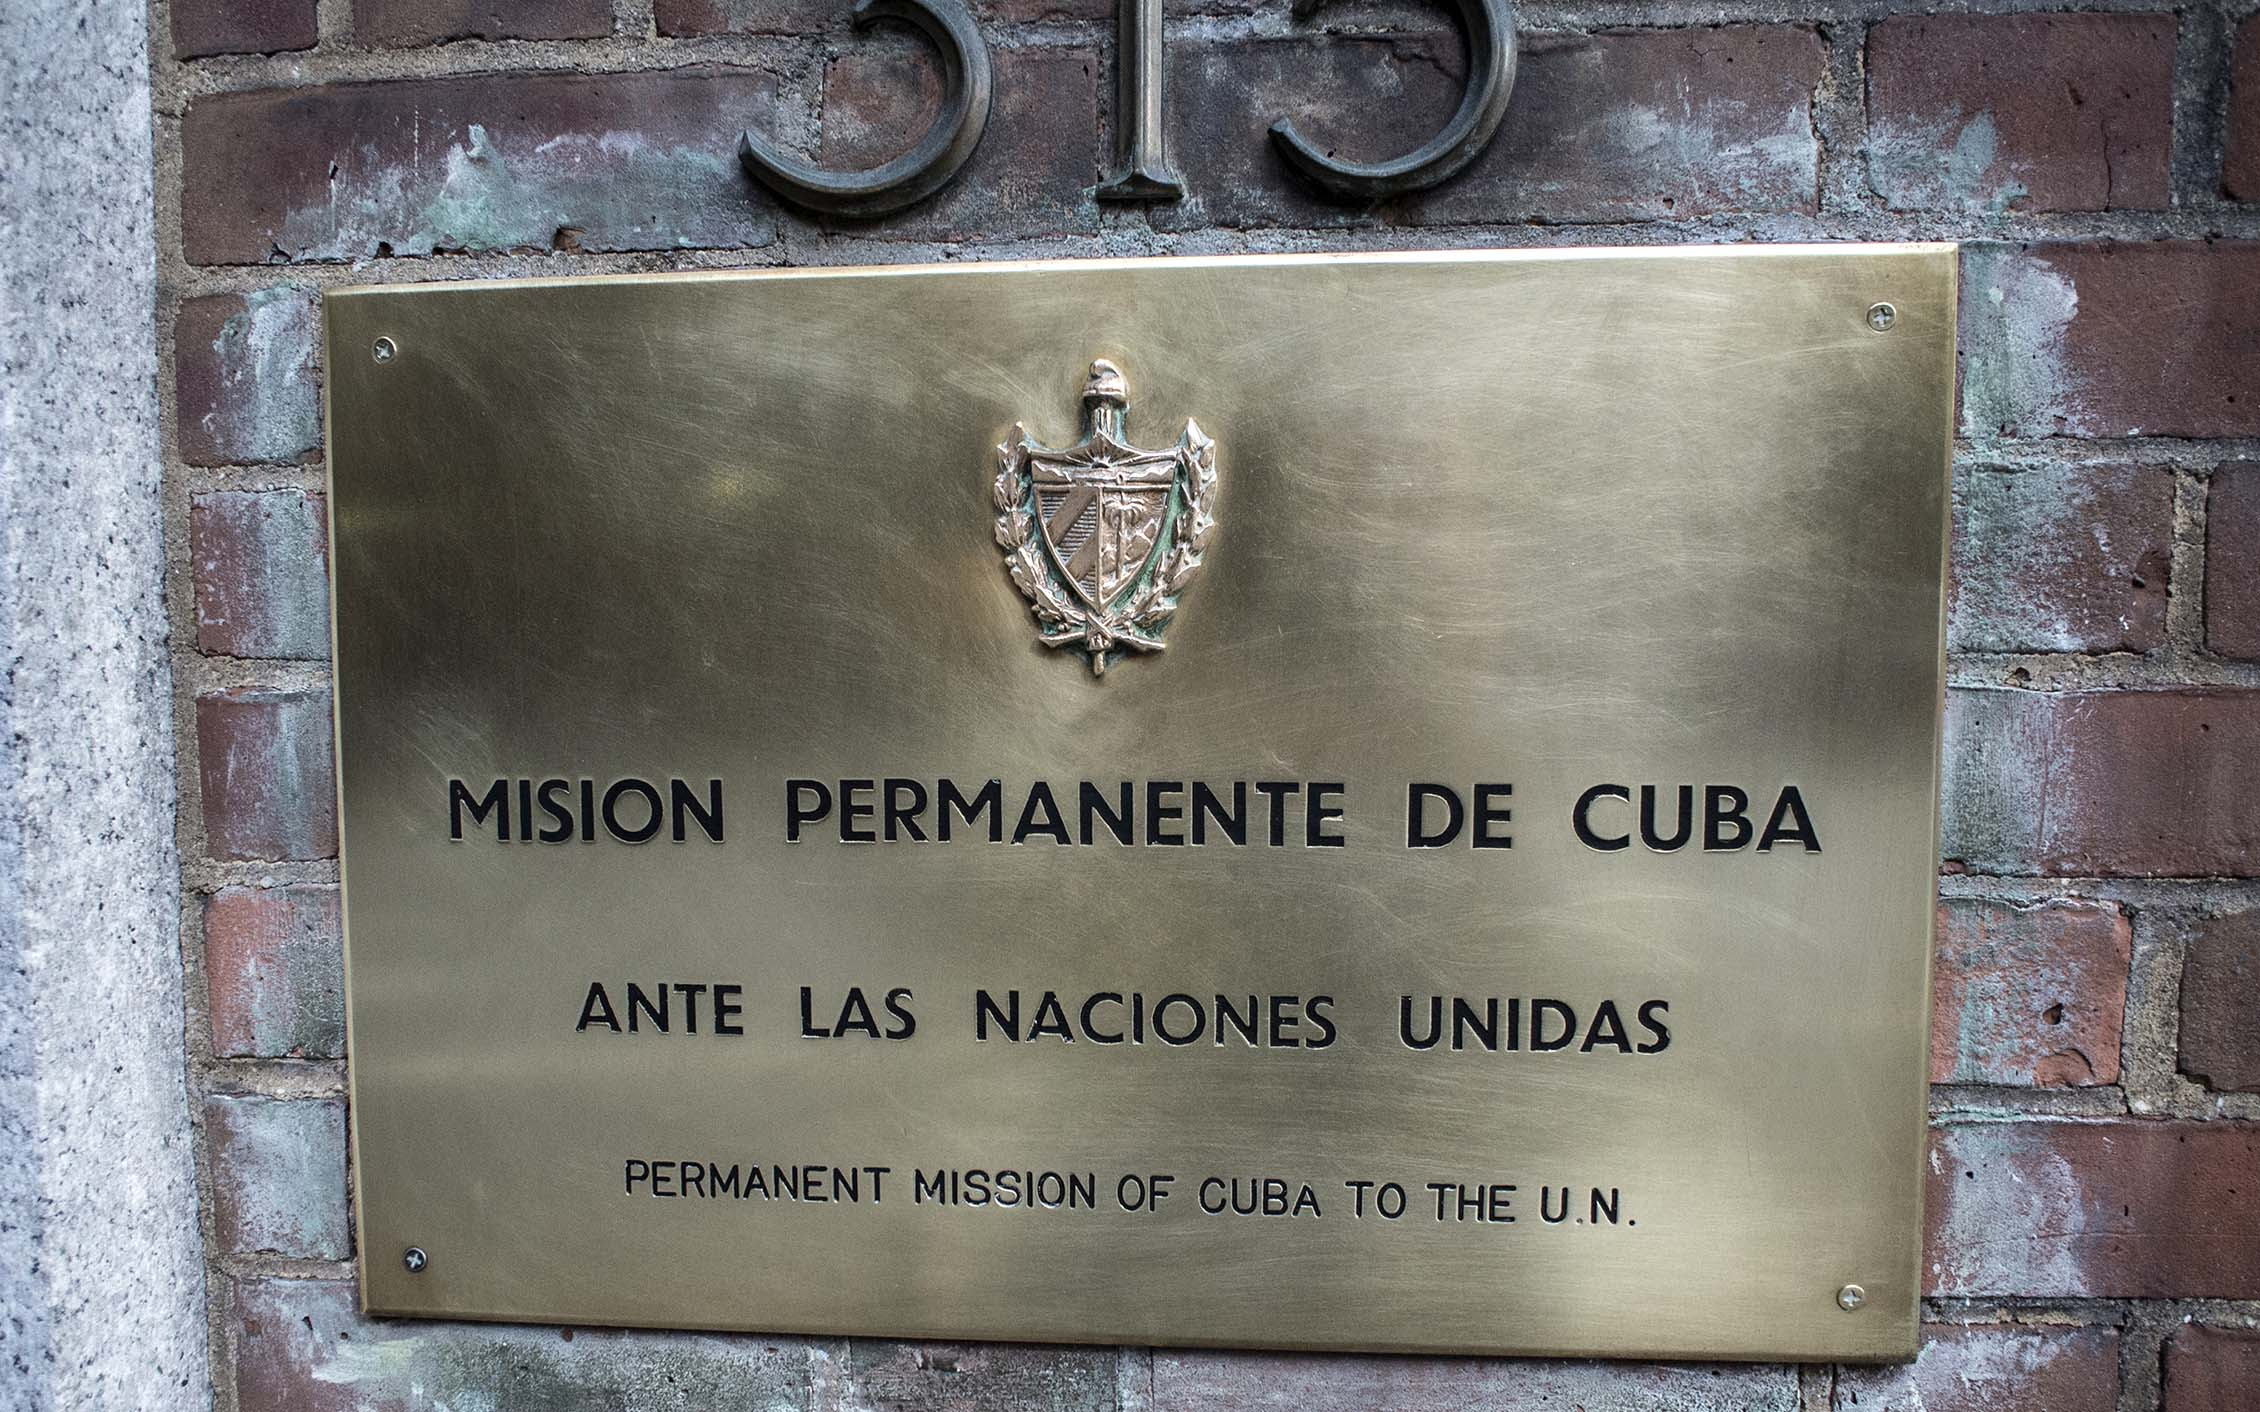 Two Members of Cuba's UN Mission Ordered to Leave